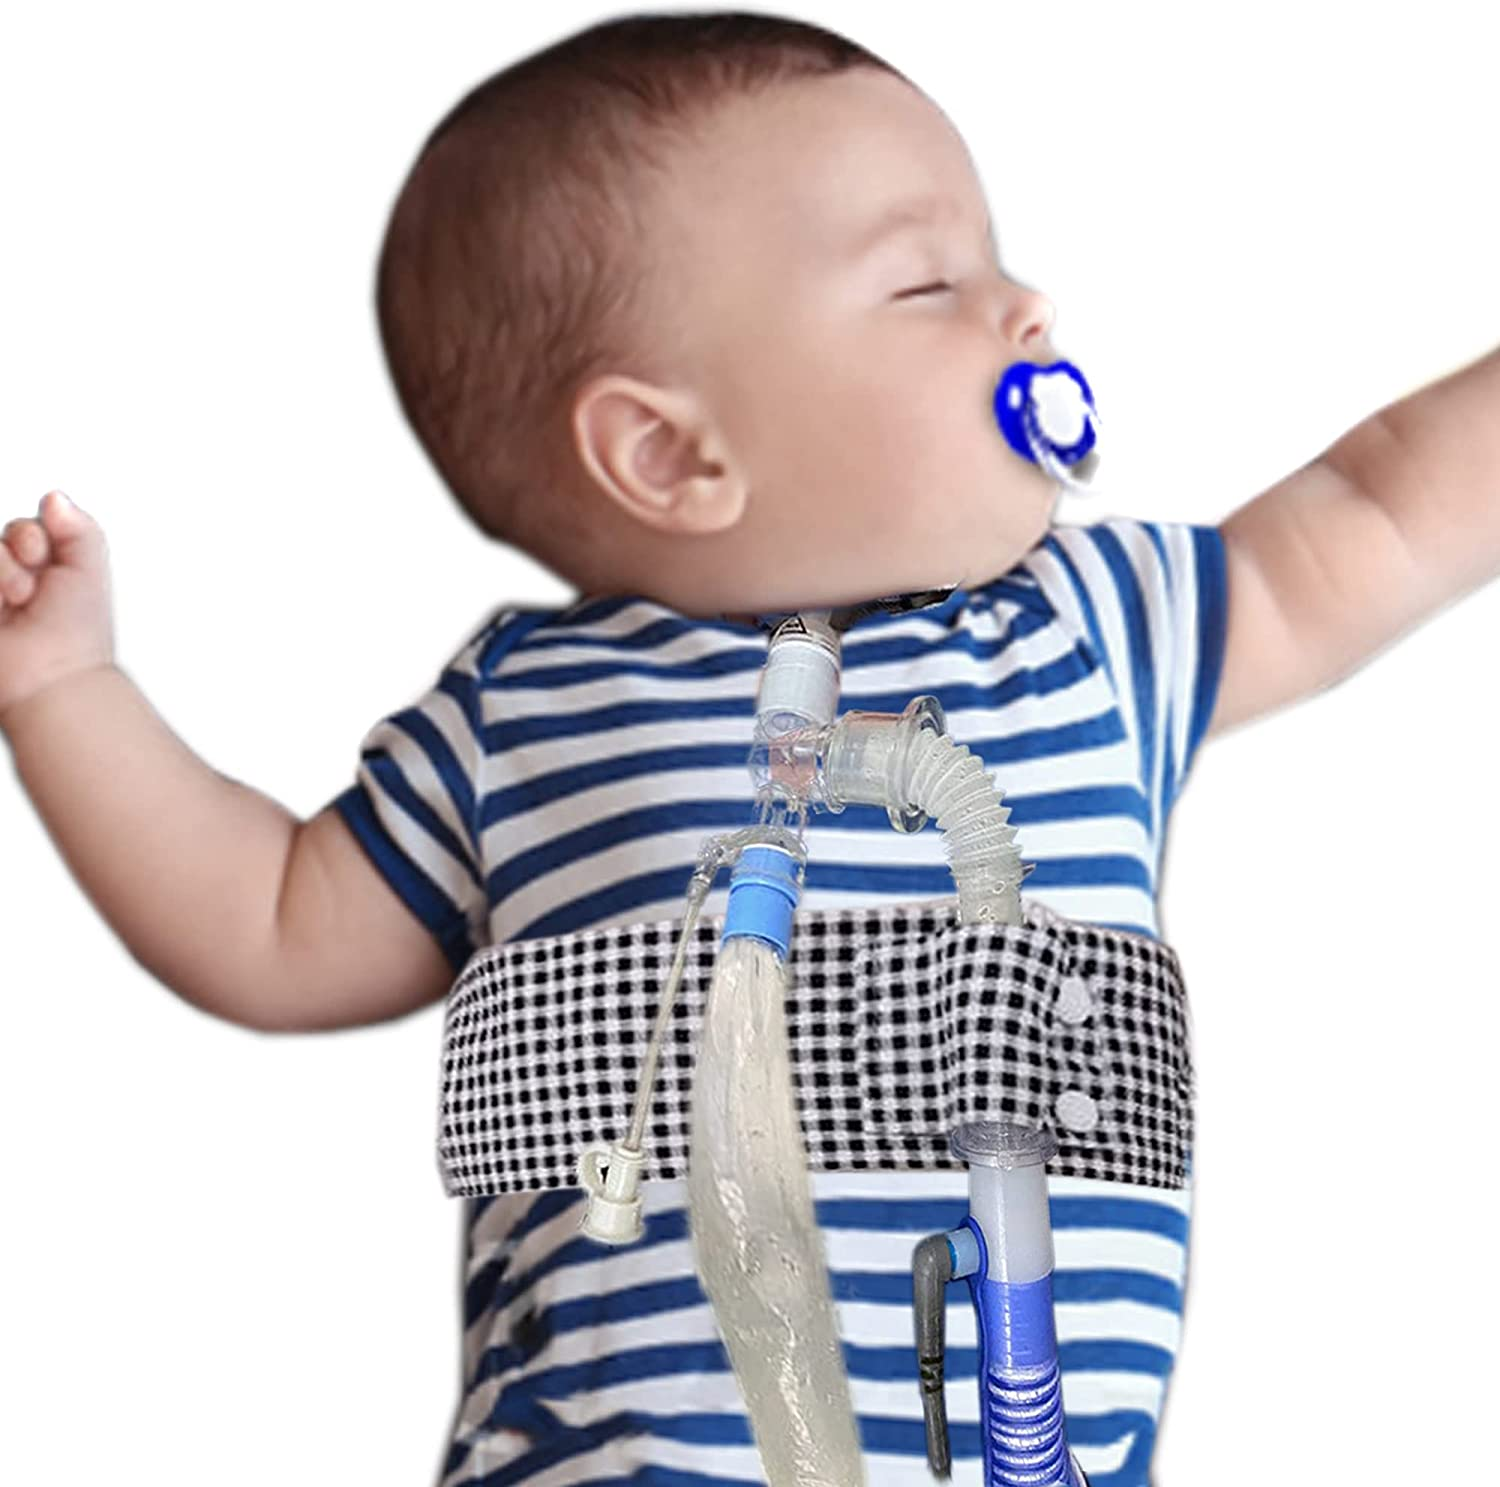 Adjustable Trach and Vent Circuit Belt Prevent Pulling The Circuit for Babies Children Kids